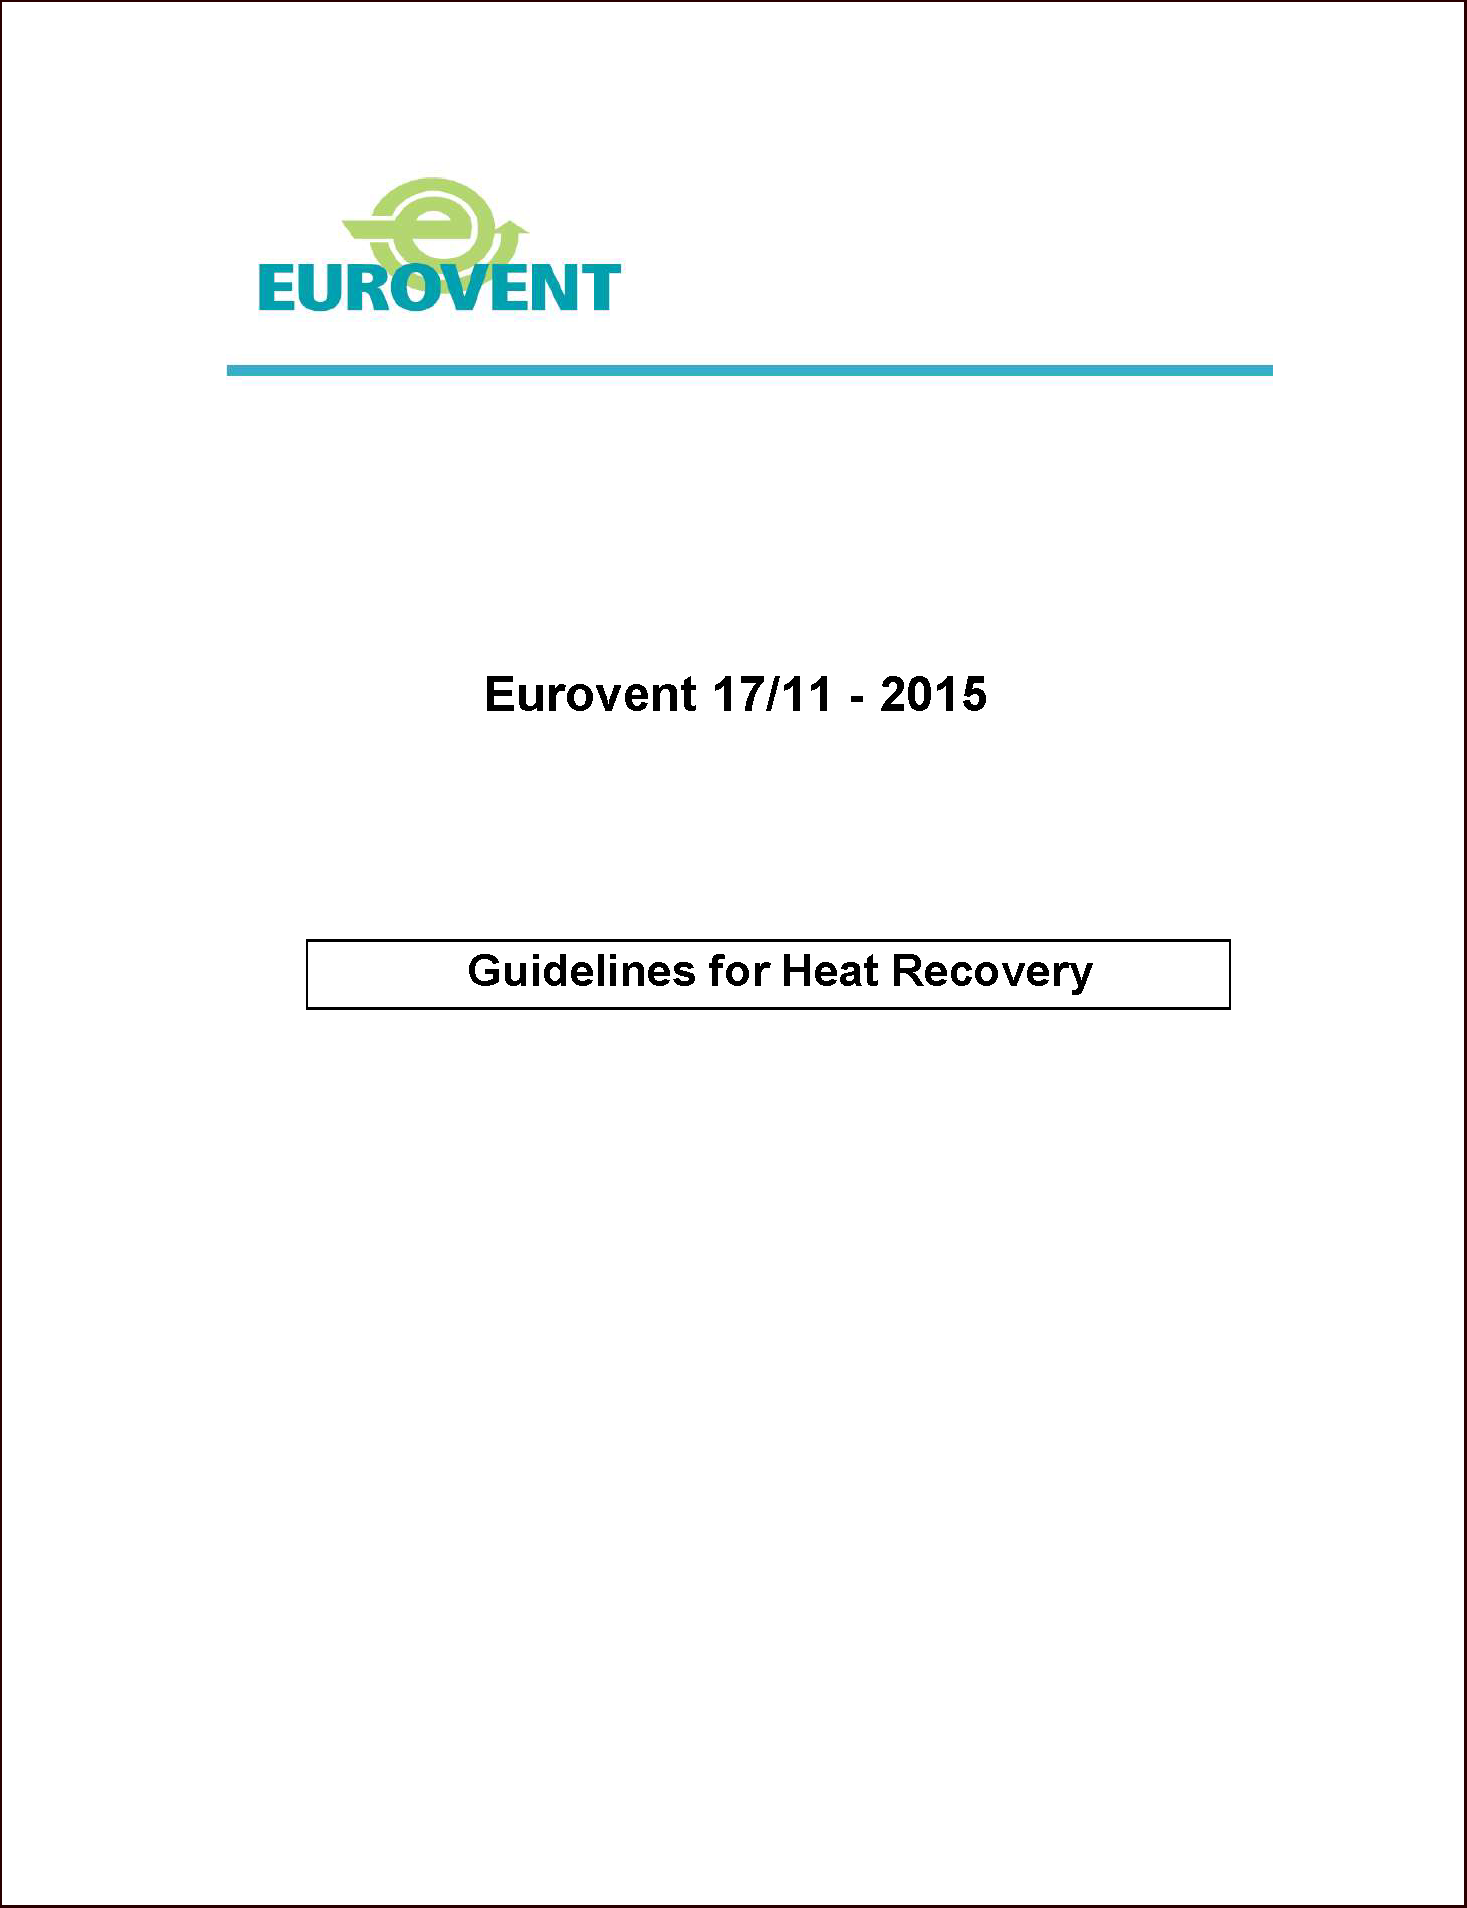 2015 - Guidelines for Heat Recovery